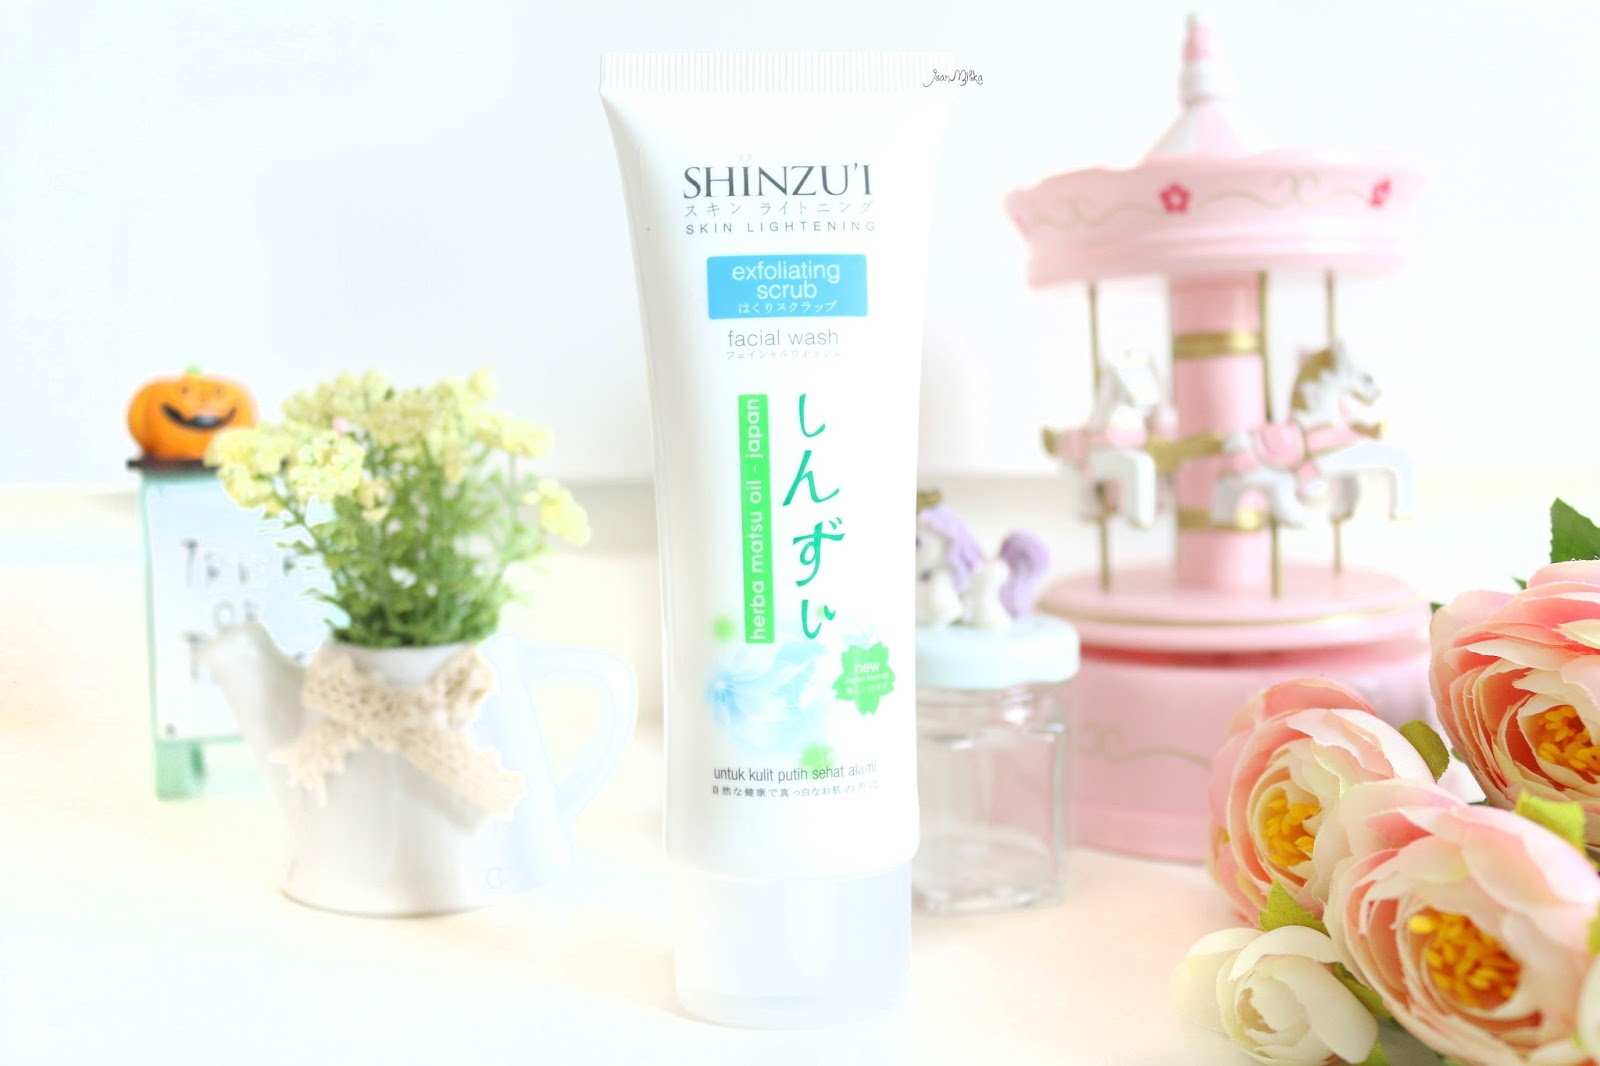 shinzui, putih itu shinzui, skin care, review shinzui, shinzui lightening series, shinzui scrub, shinzui facial wash, perawatan wajah, acne